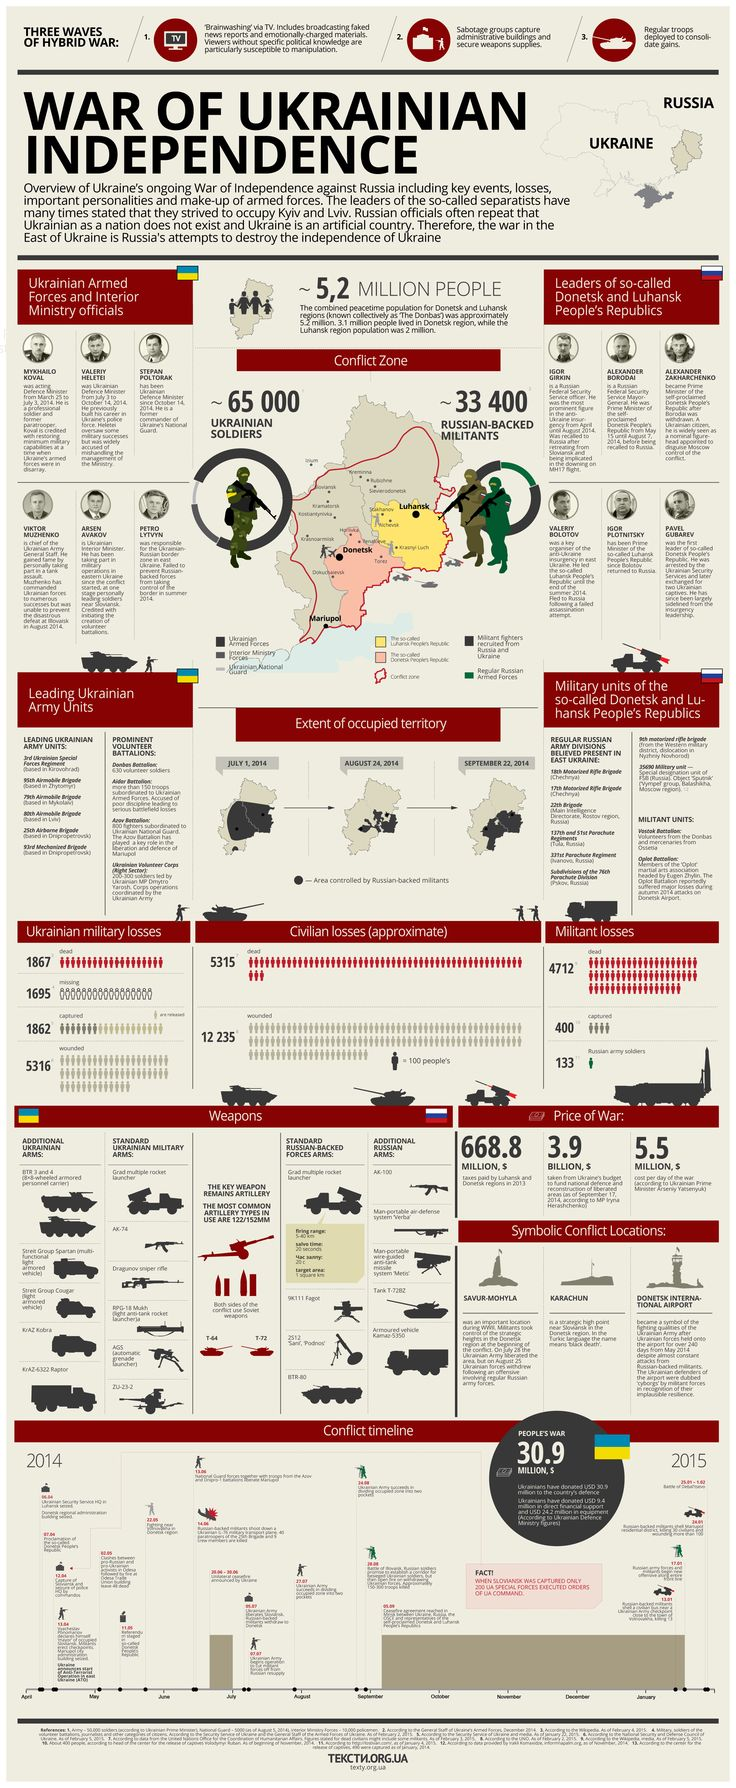 10 months of Ukraine's war for its independence: a summary. CLICK TO ENLARGE